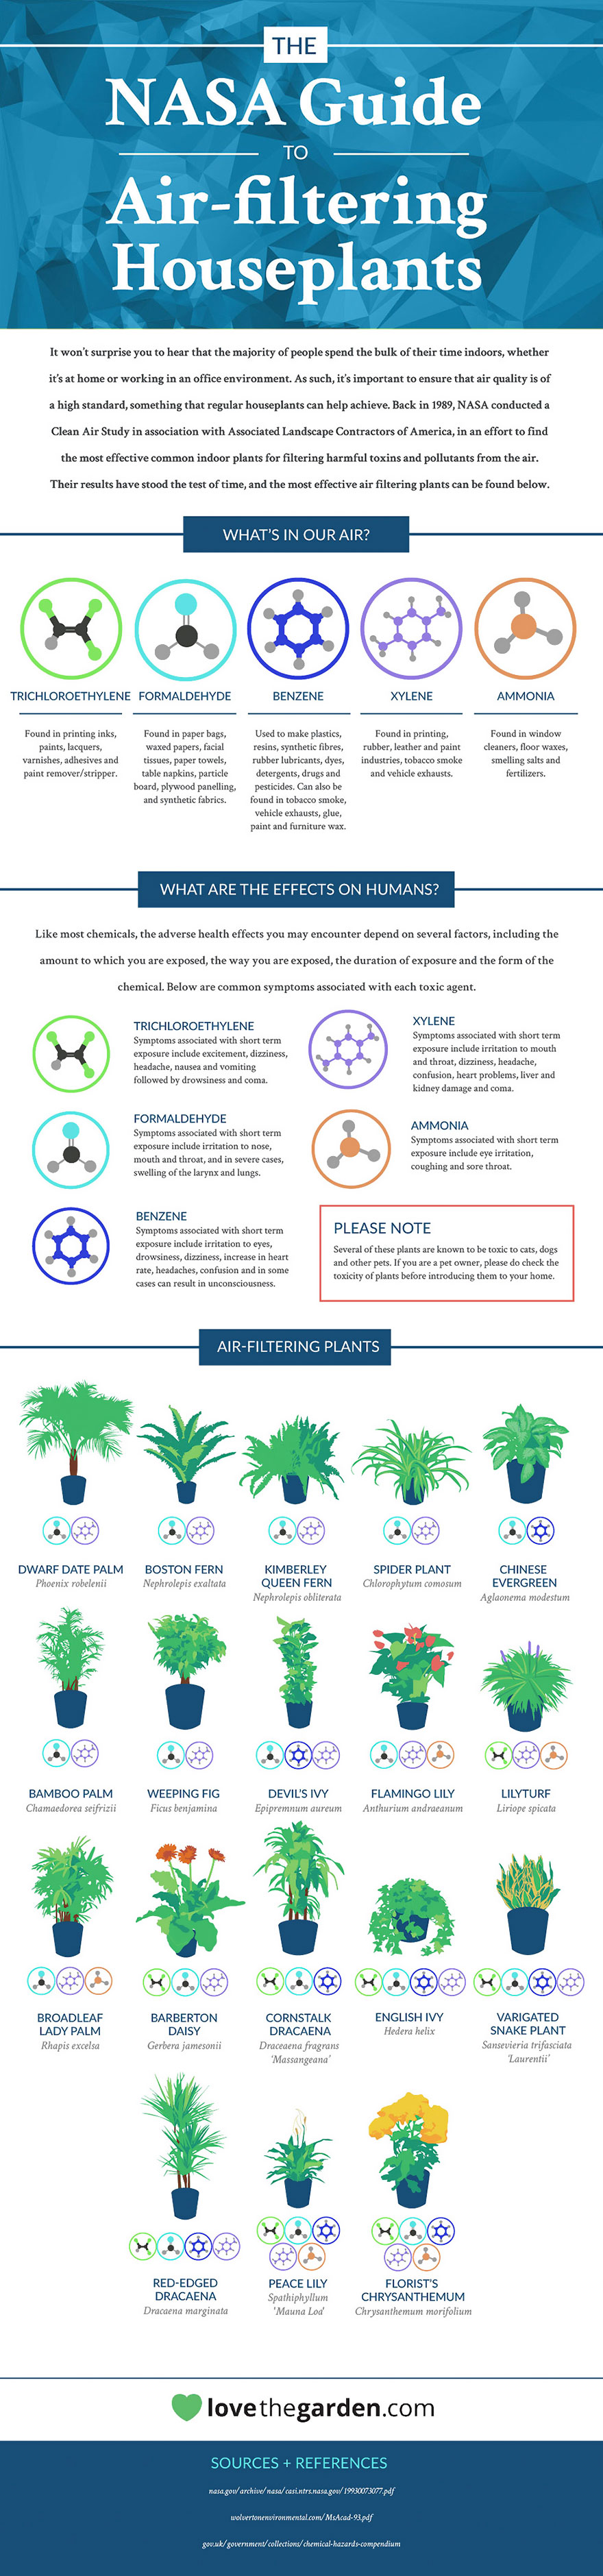 NASA Reveals A List Of The Best Air-Cleaning Plants For Your ... on spices names, grass names, berries names, wildflowers names, veggies names, plants names, pets names, design names, garden names, cacti names, photography names, nuts names, furniture names, weather names, insects names, ornamental grasses names, herbs names, leaves names, lawn care names, pottery names,